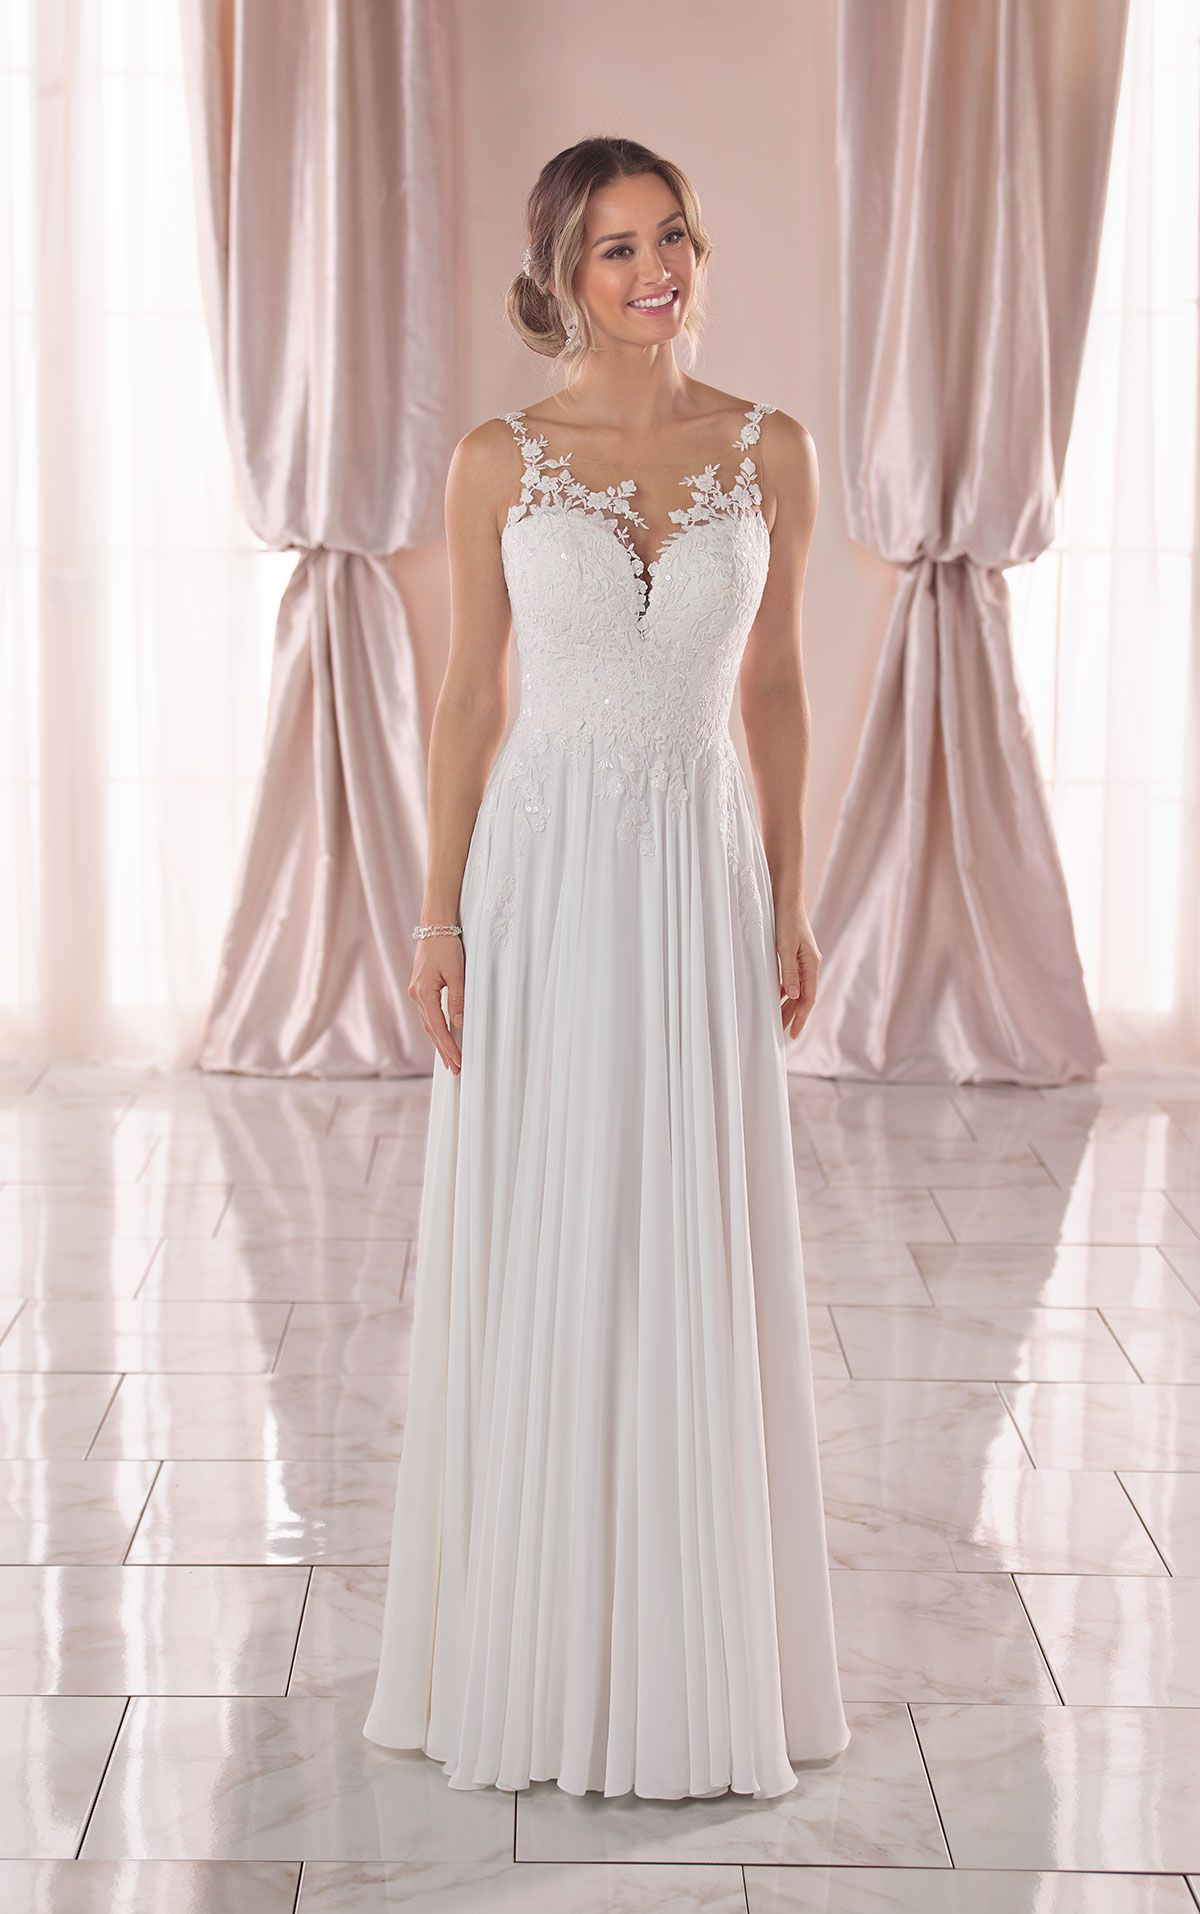 Crepe Chiffon Wedding Dress With Asymmetrical Neckline Stella York Wedding Dresses Stella York Wedding Dress York Wedding Dress Chiffon Wedding Dress